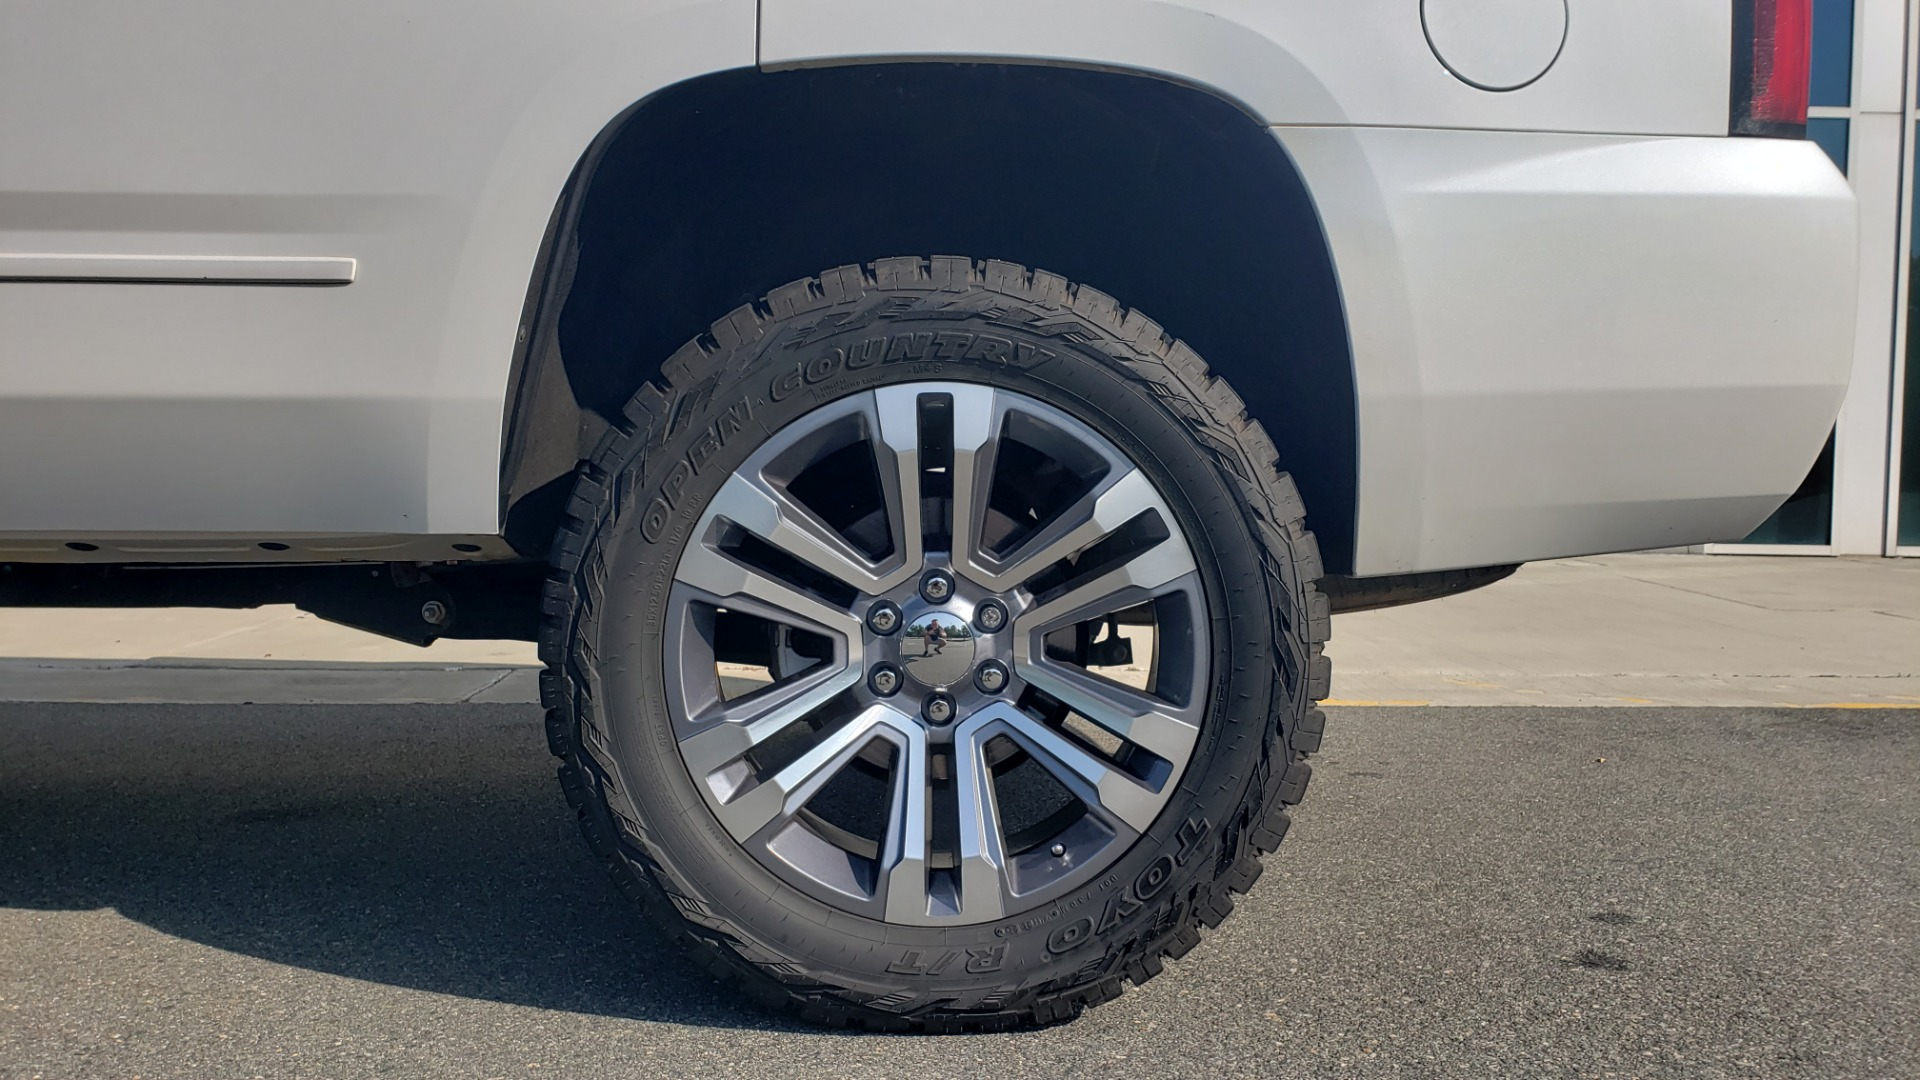 Used 2018 Chevrolet TAHOE PREMIER 4X4 / NAV / BOSE / SUNROOF / ENT SYS / 3-ROW / REARVIEW for sale $55,995 at Formula Imports in Charlotte NC 28227 81